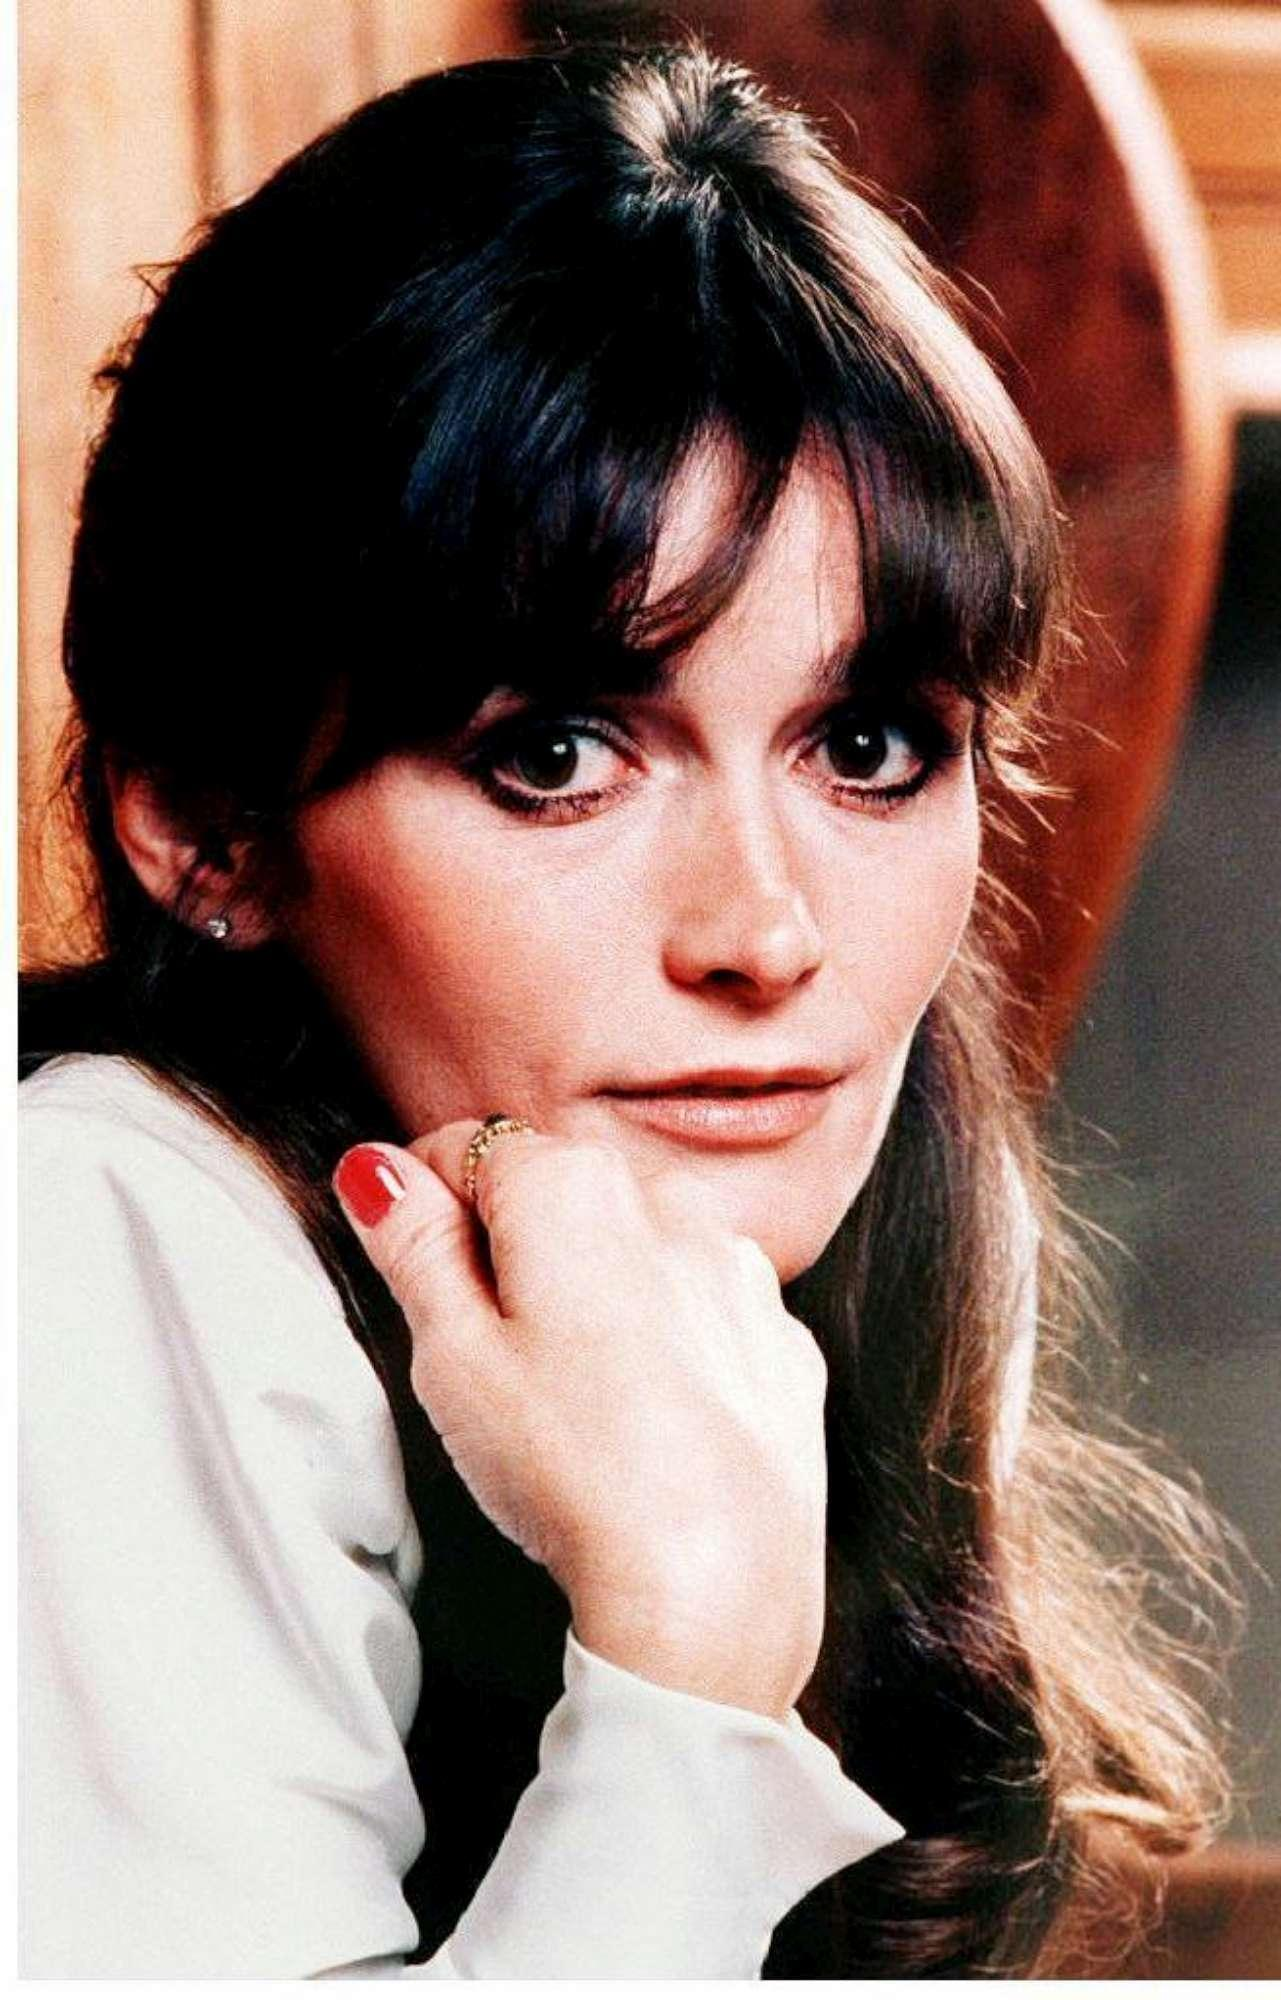 Addio a Margot Kidder, la Lois Lane di Superman